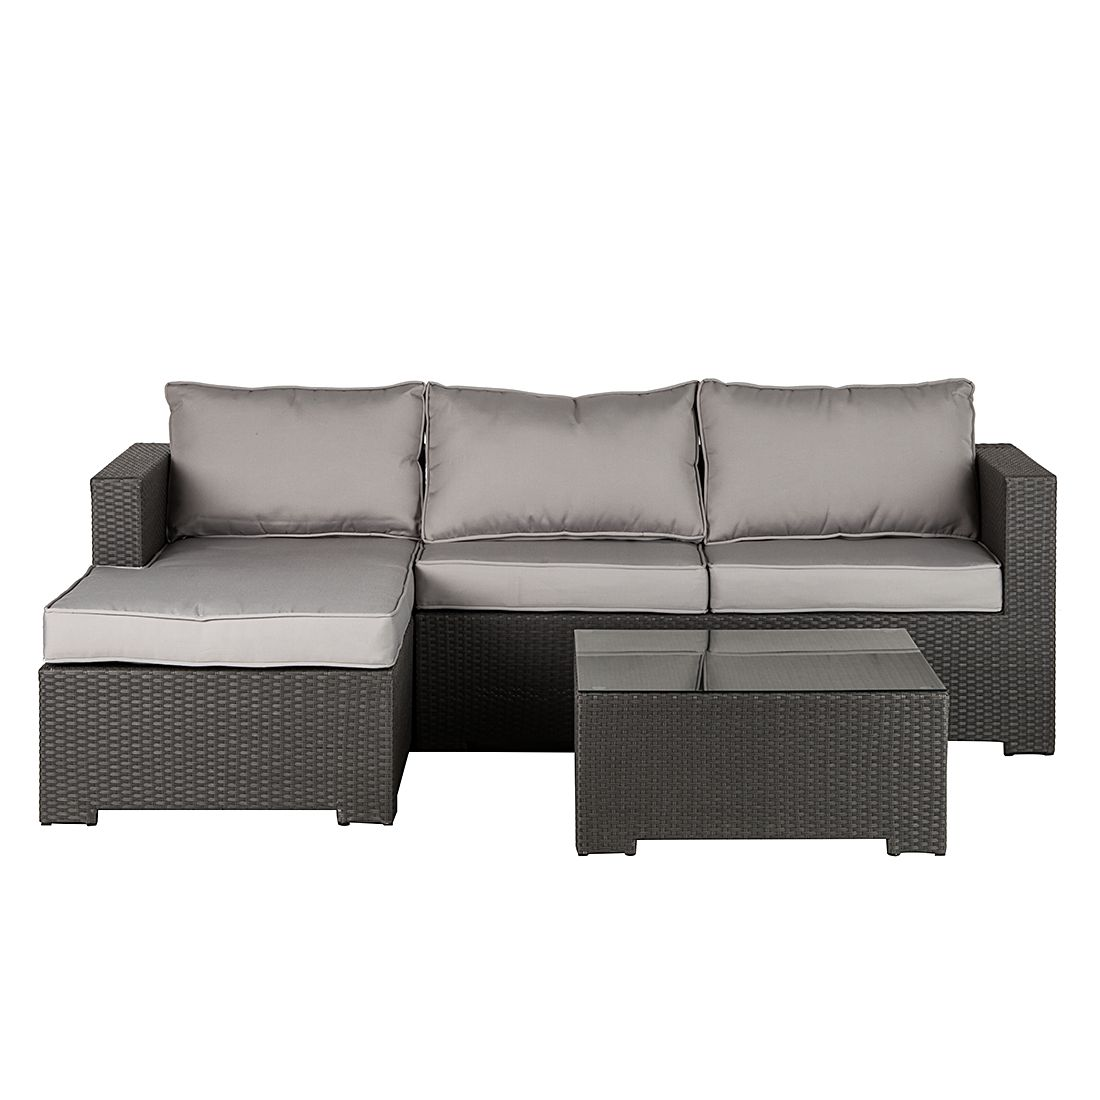 3 teiliges sofa great interesting medium size of gnstig sofa garnitur teilig gnstig brostuhl. Black Bedroom Furniture Sets. Home Design Ideas